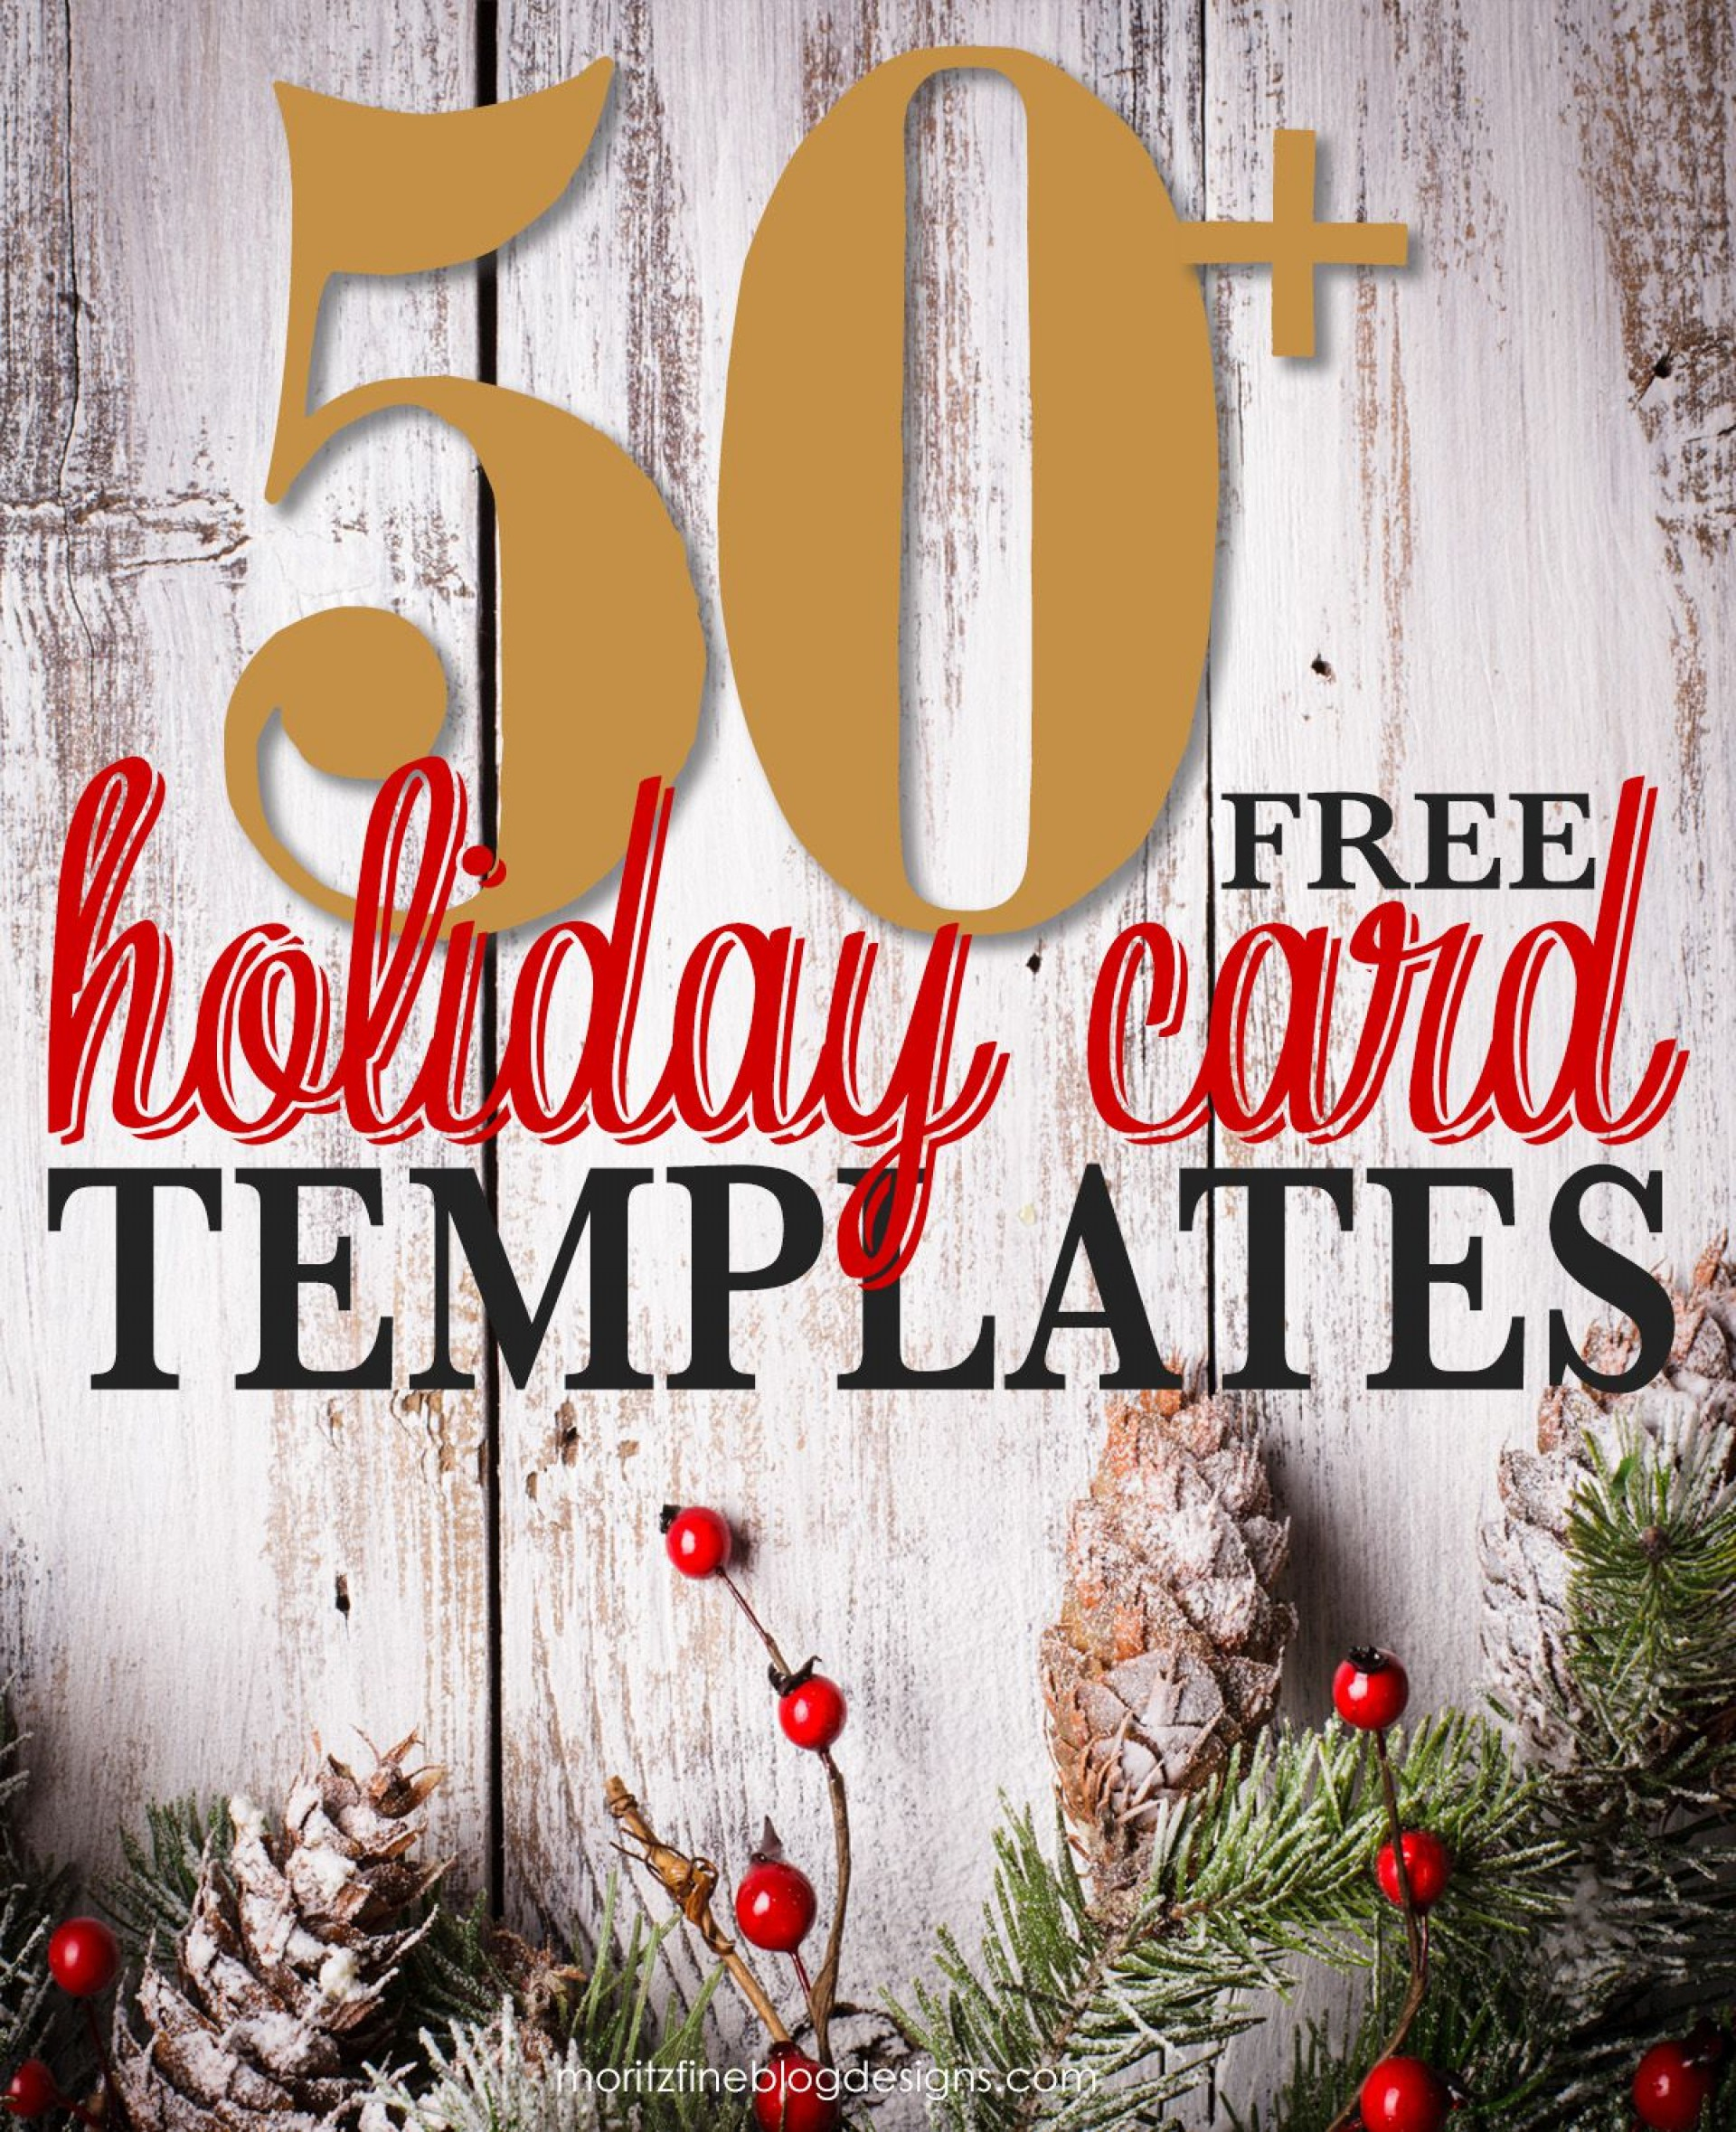 000 Remarkable Free Photo Christma Card Template Concept  Templates For Photoshop Online1920